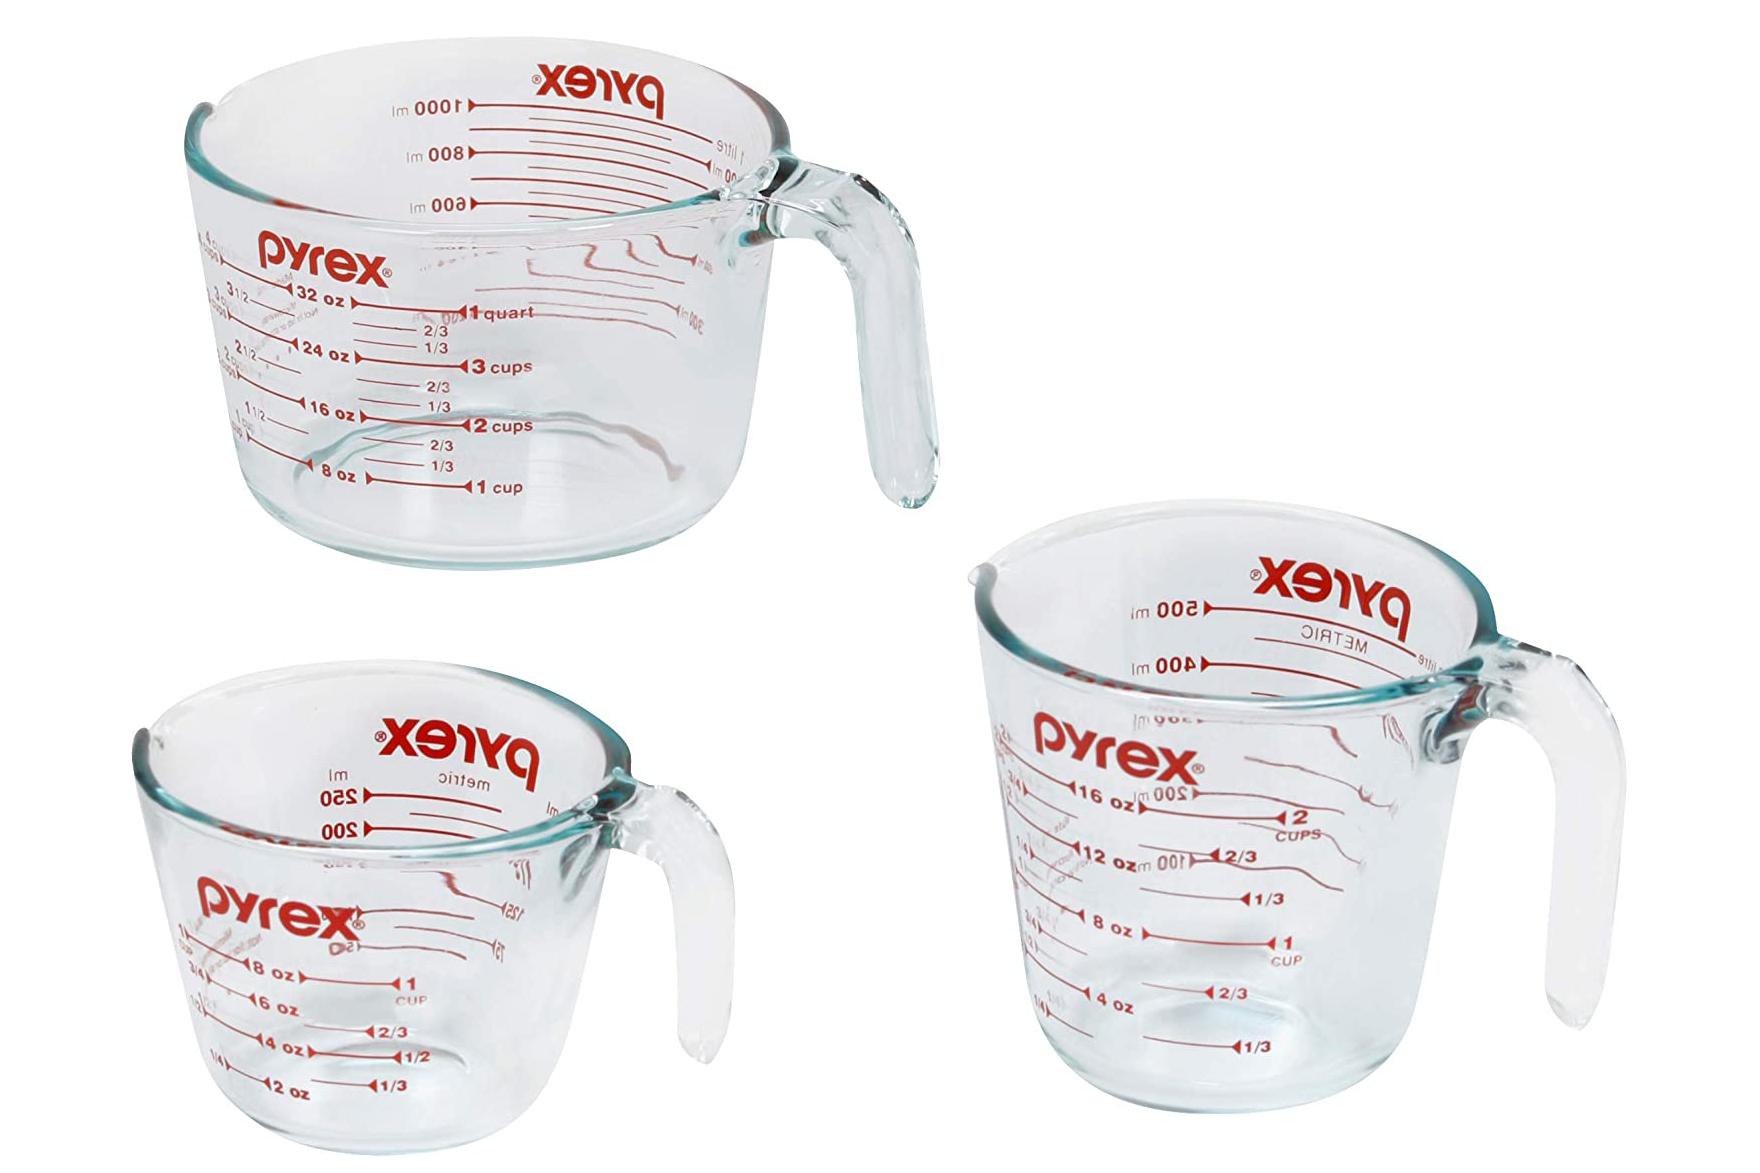 Pyrex Glass Measuring Cup Set on a white background